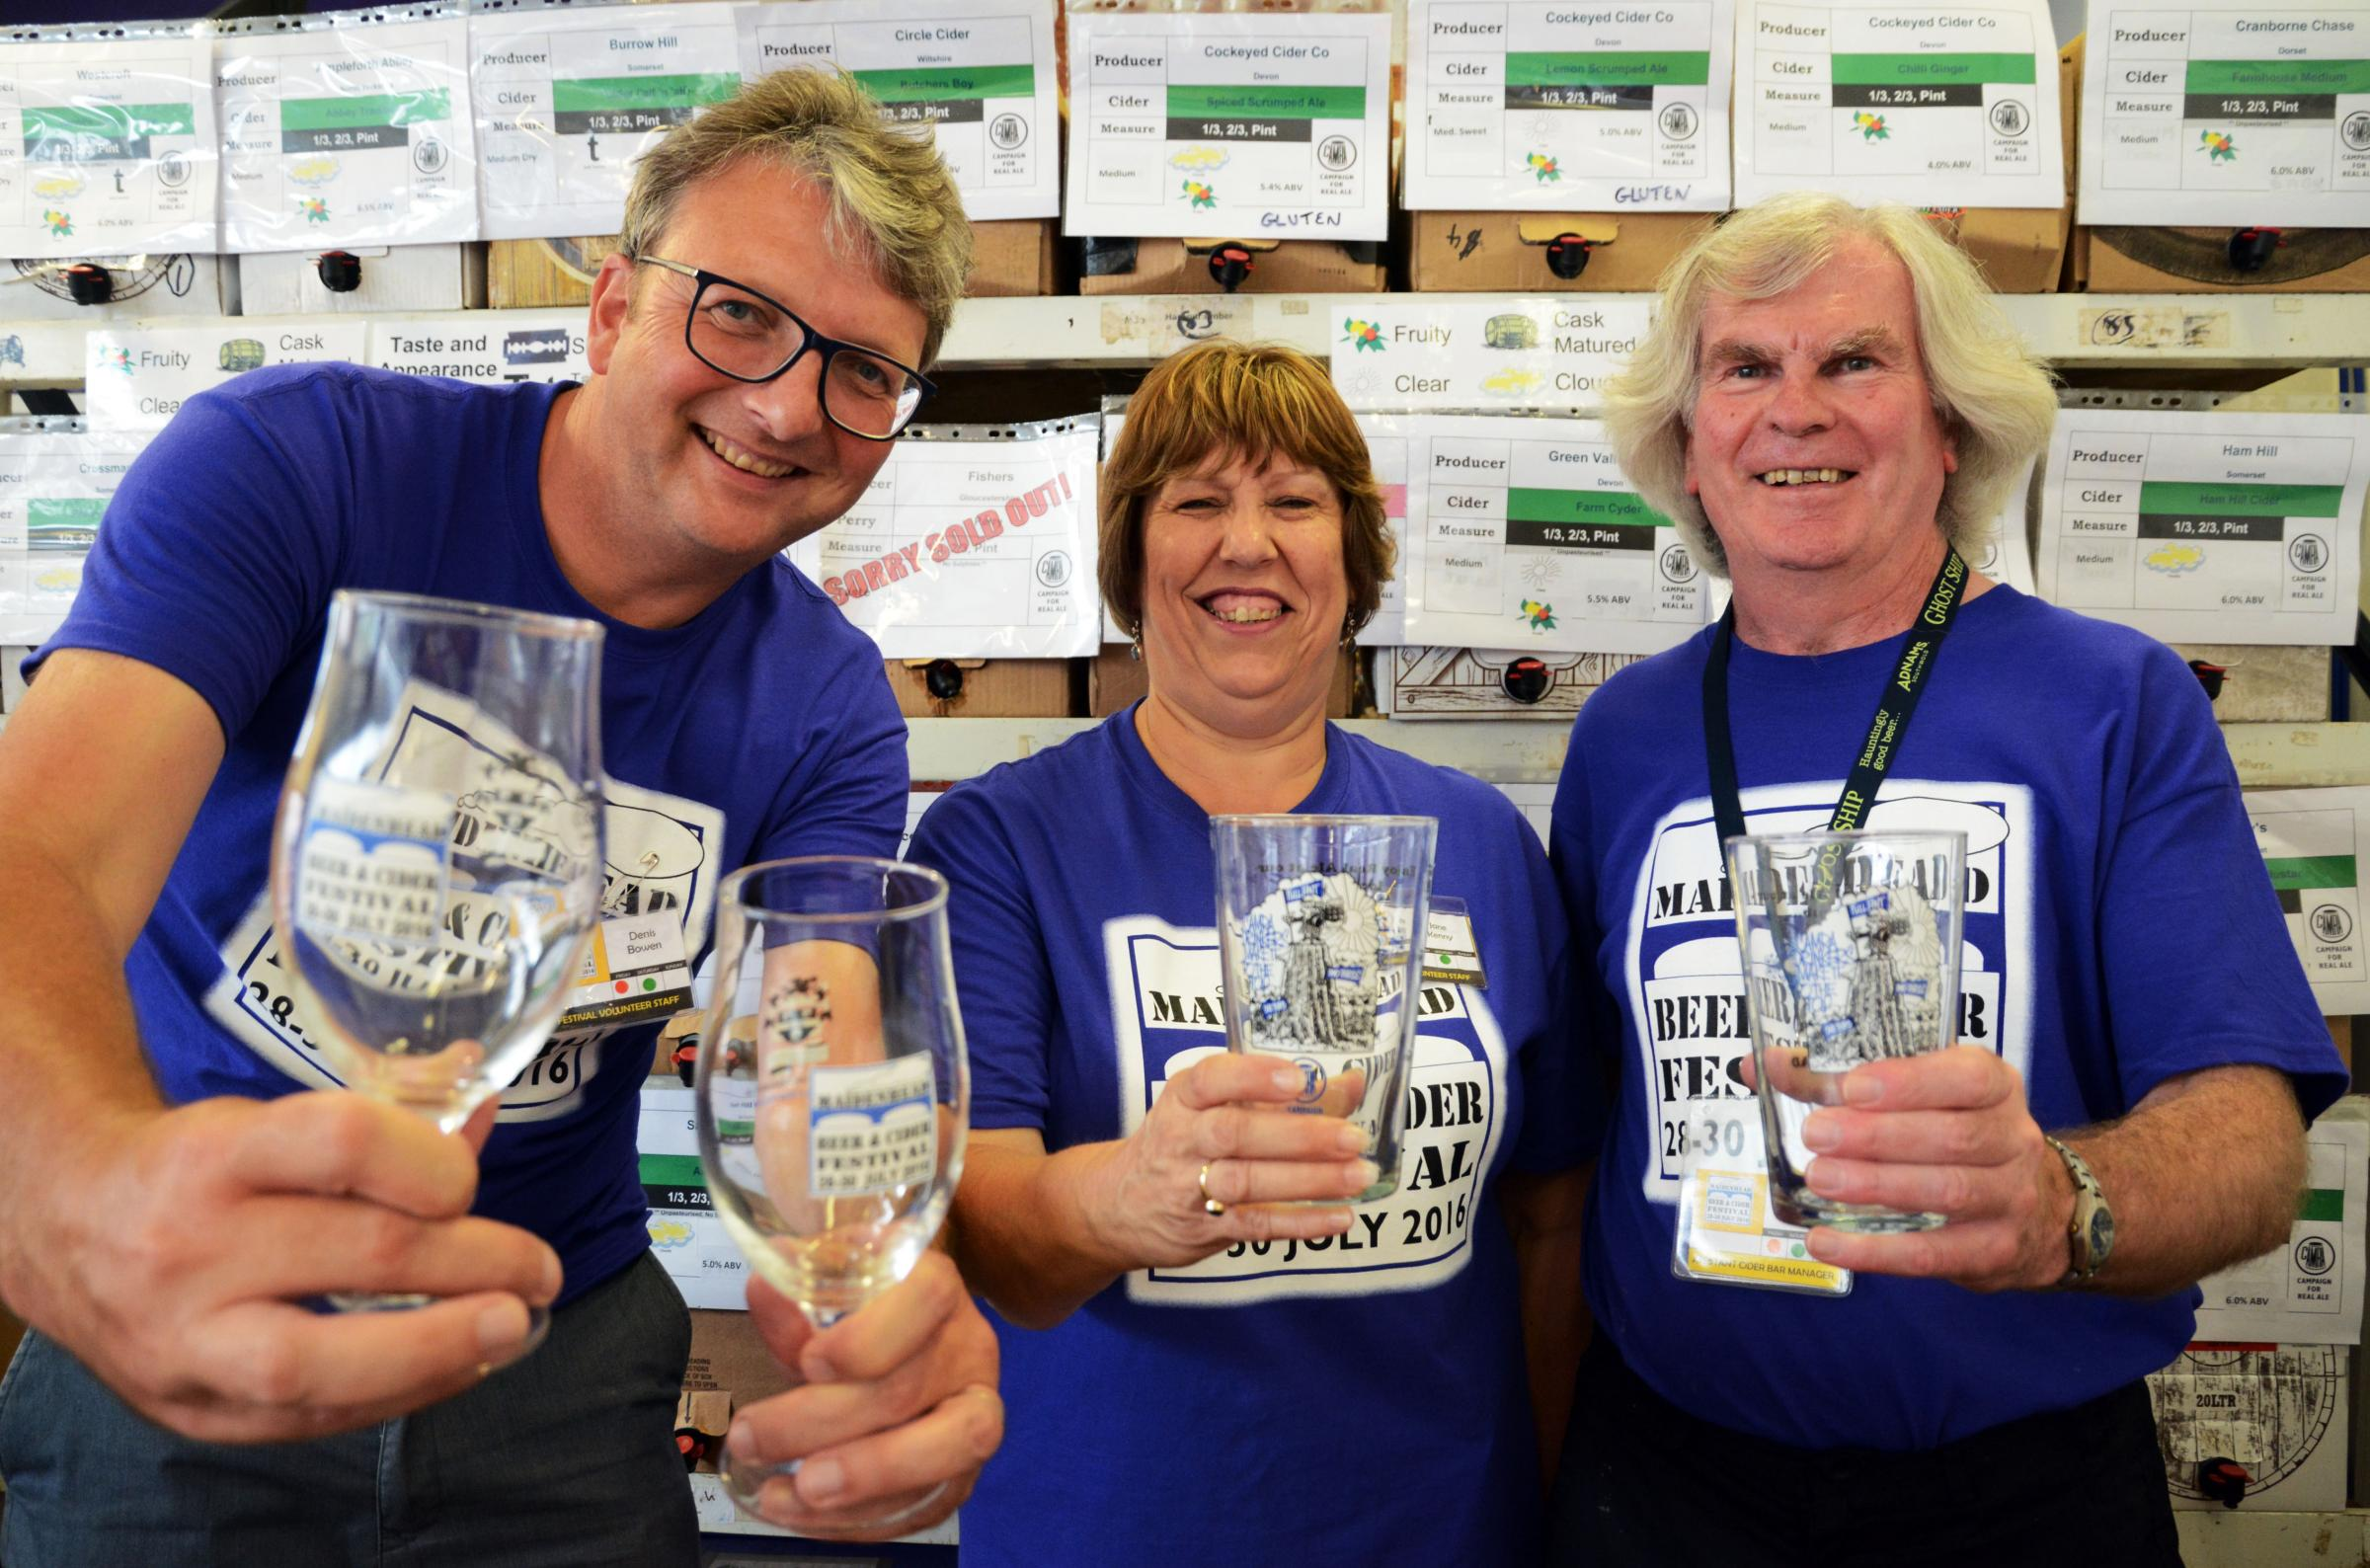 Denis Bowden, Jane Kenny and Adam Miller work the cider bar - Maidenhead Beer and Cider Festival, Deborough College, Maiudenhead - Pictures: Mike Swift 160787.